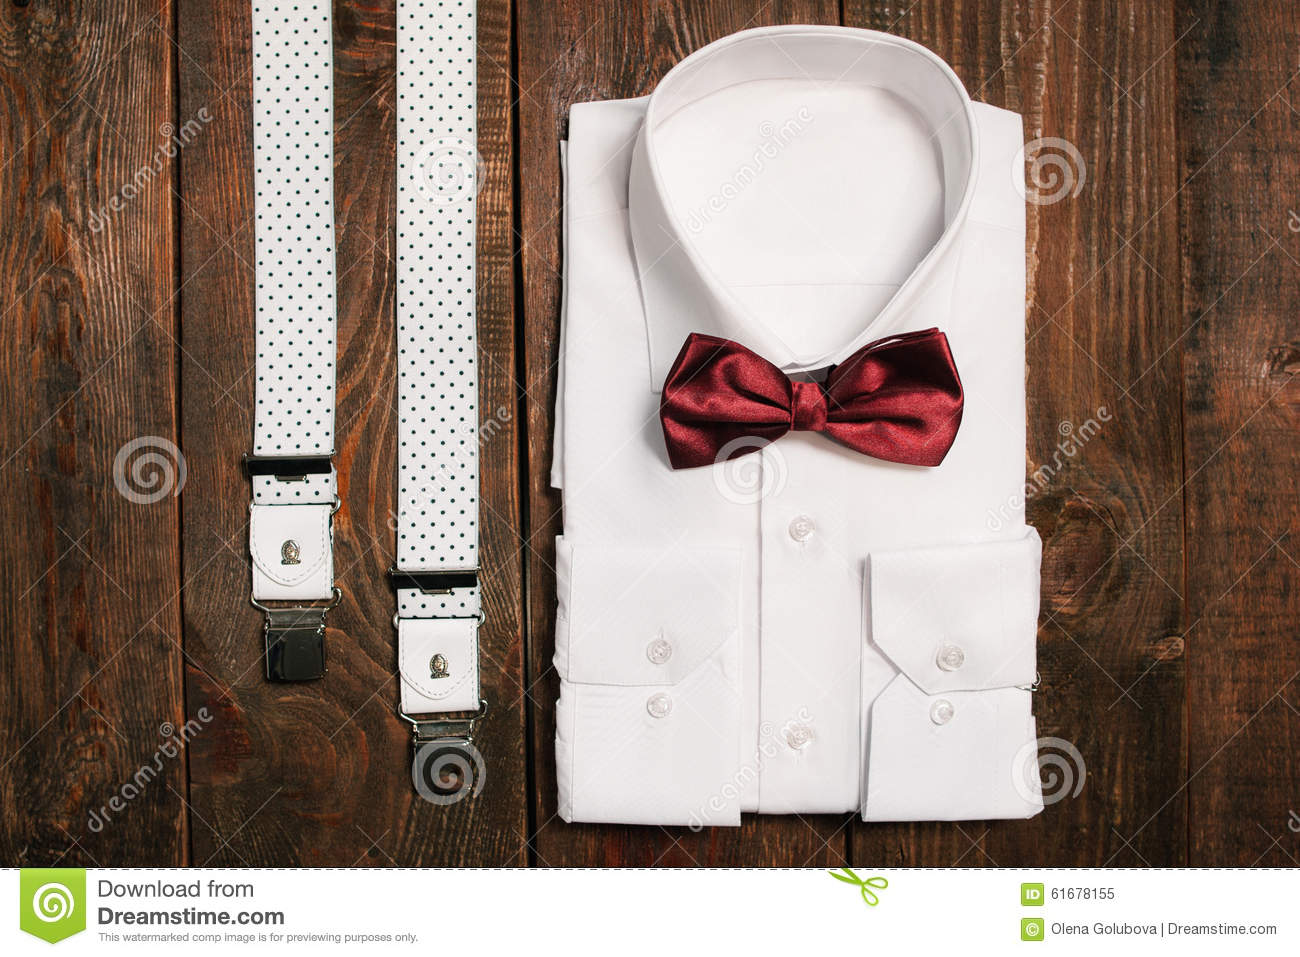 22038599be2c Stylish collection of men's clothing. Marsala tie , funky suspenders, a  white shirt - wedding set for the groom . top view.